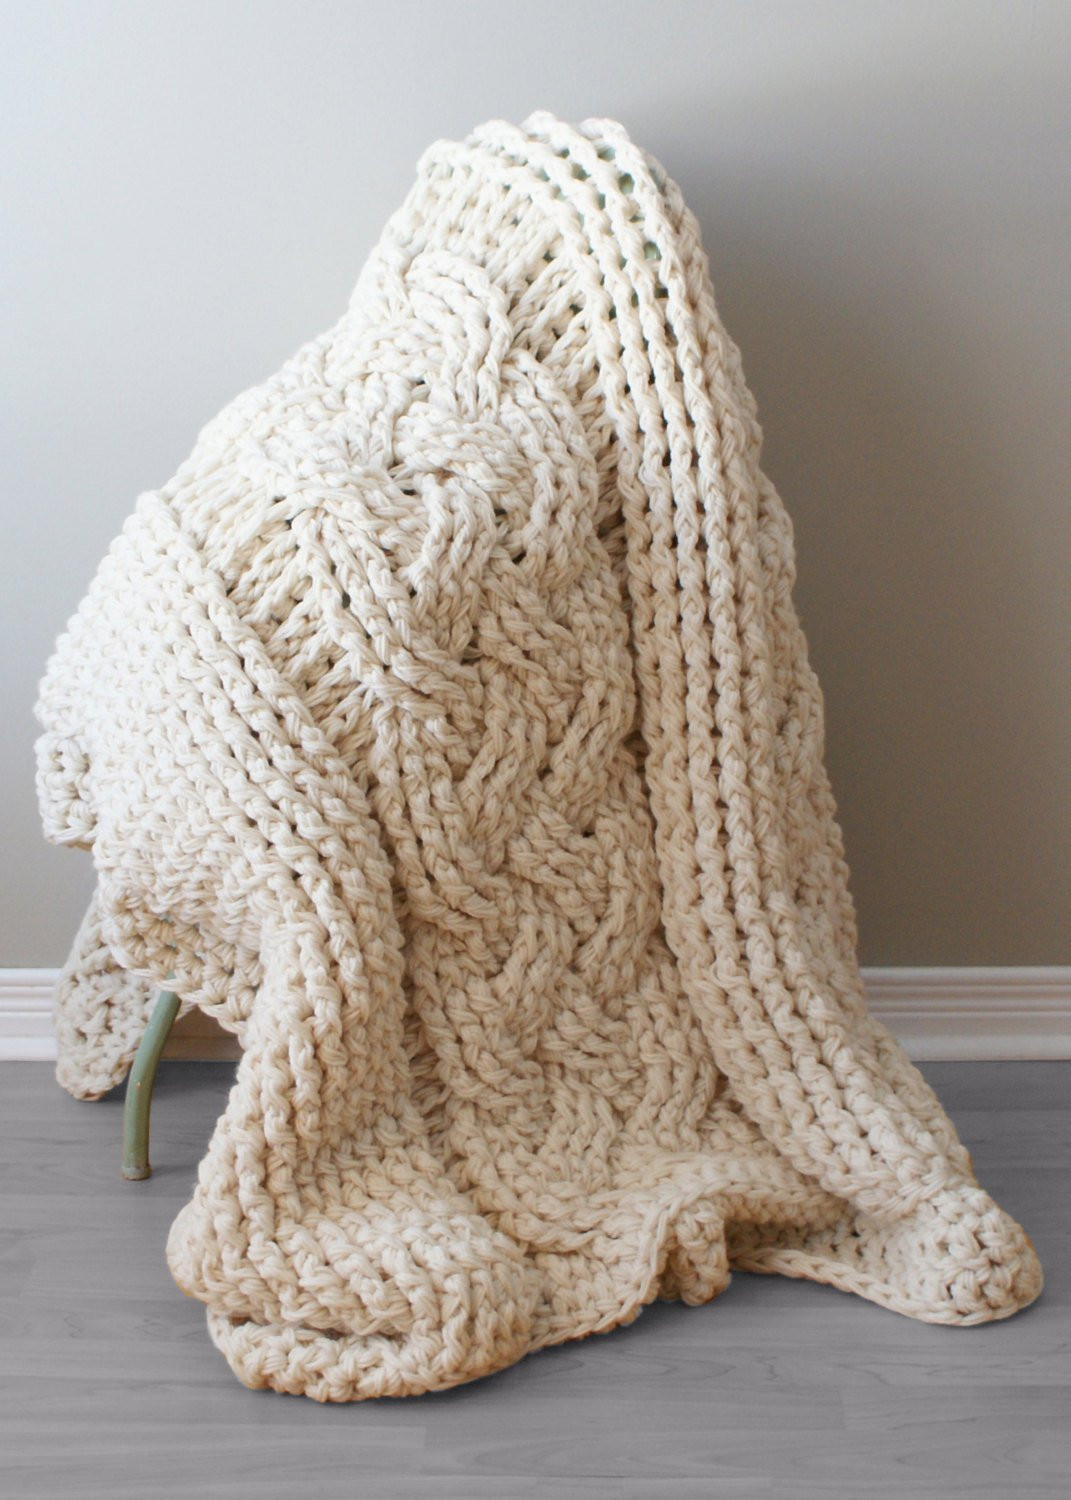 Crochet Throw Blanket Elegant Diy Crochet Pattern Throw Blanket Rug Super Chunky Double Of Great 44 Pics Crochet Throw Blanket